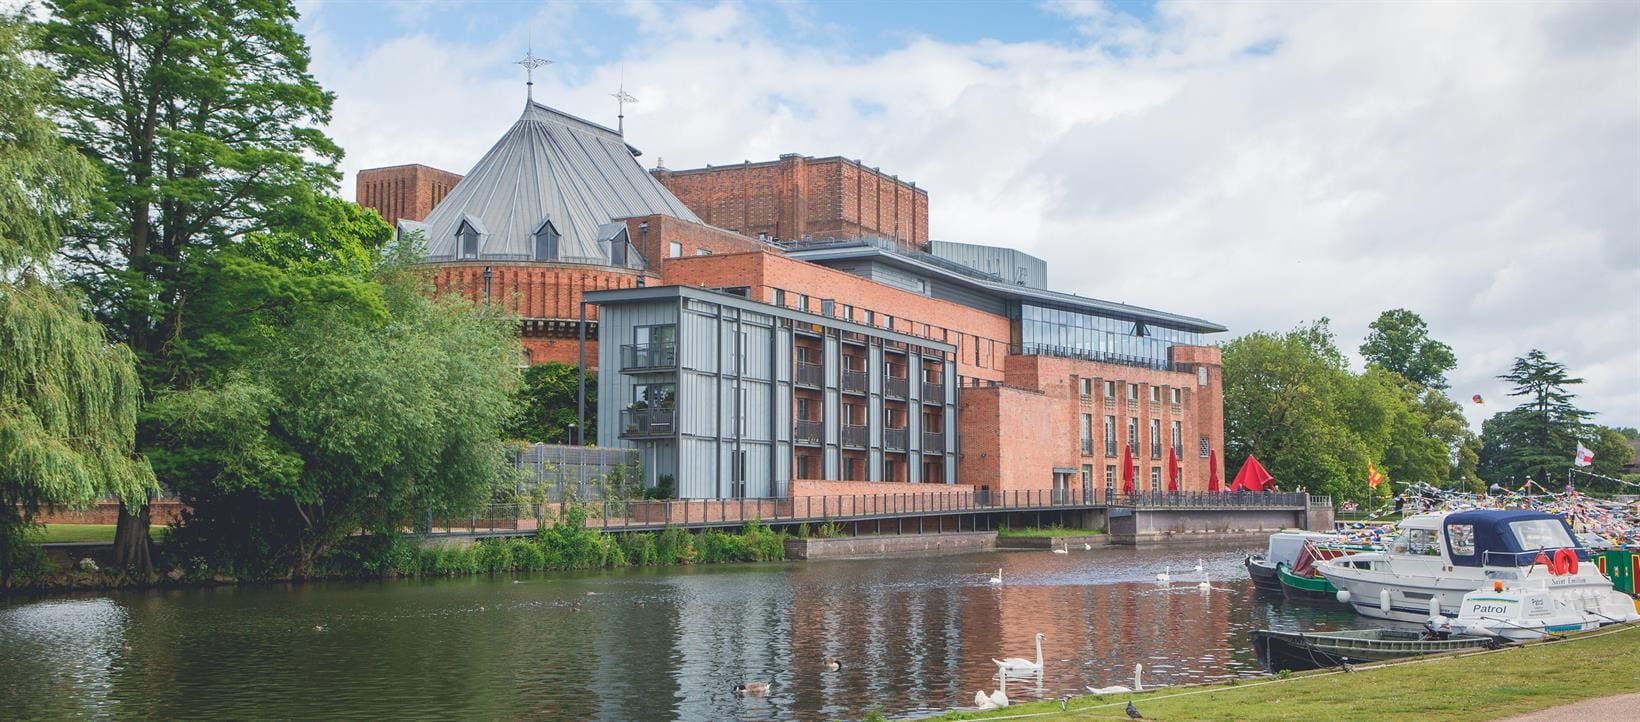 Royal Shakespeare Company theatre Warwickshire Stratford upon Avon